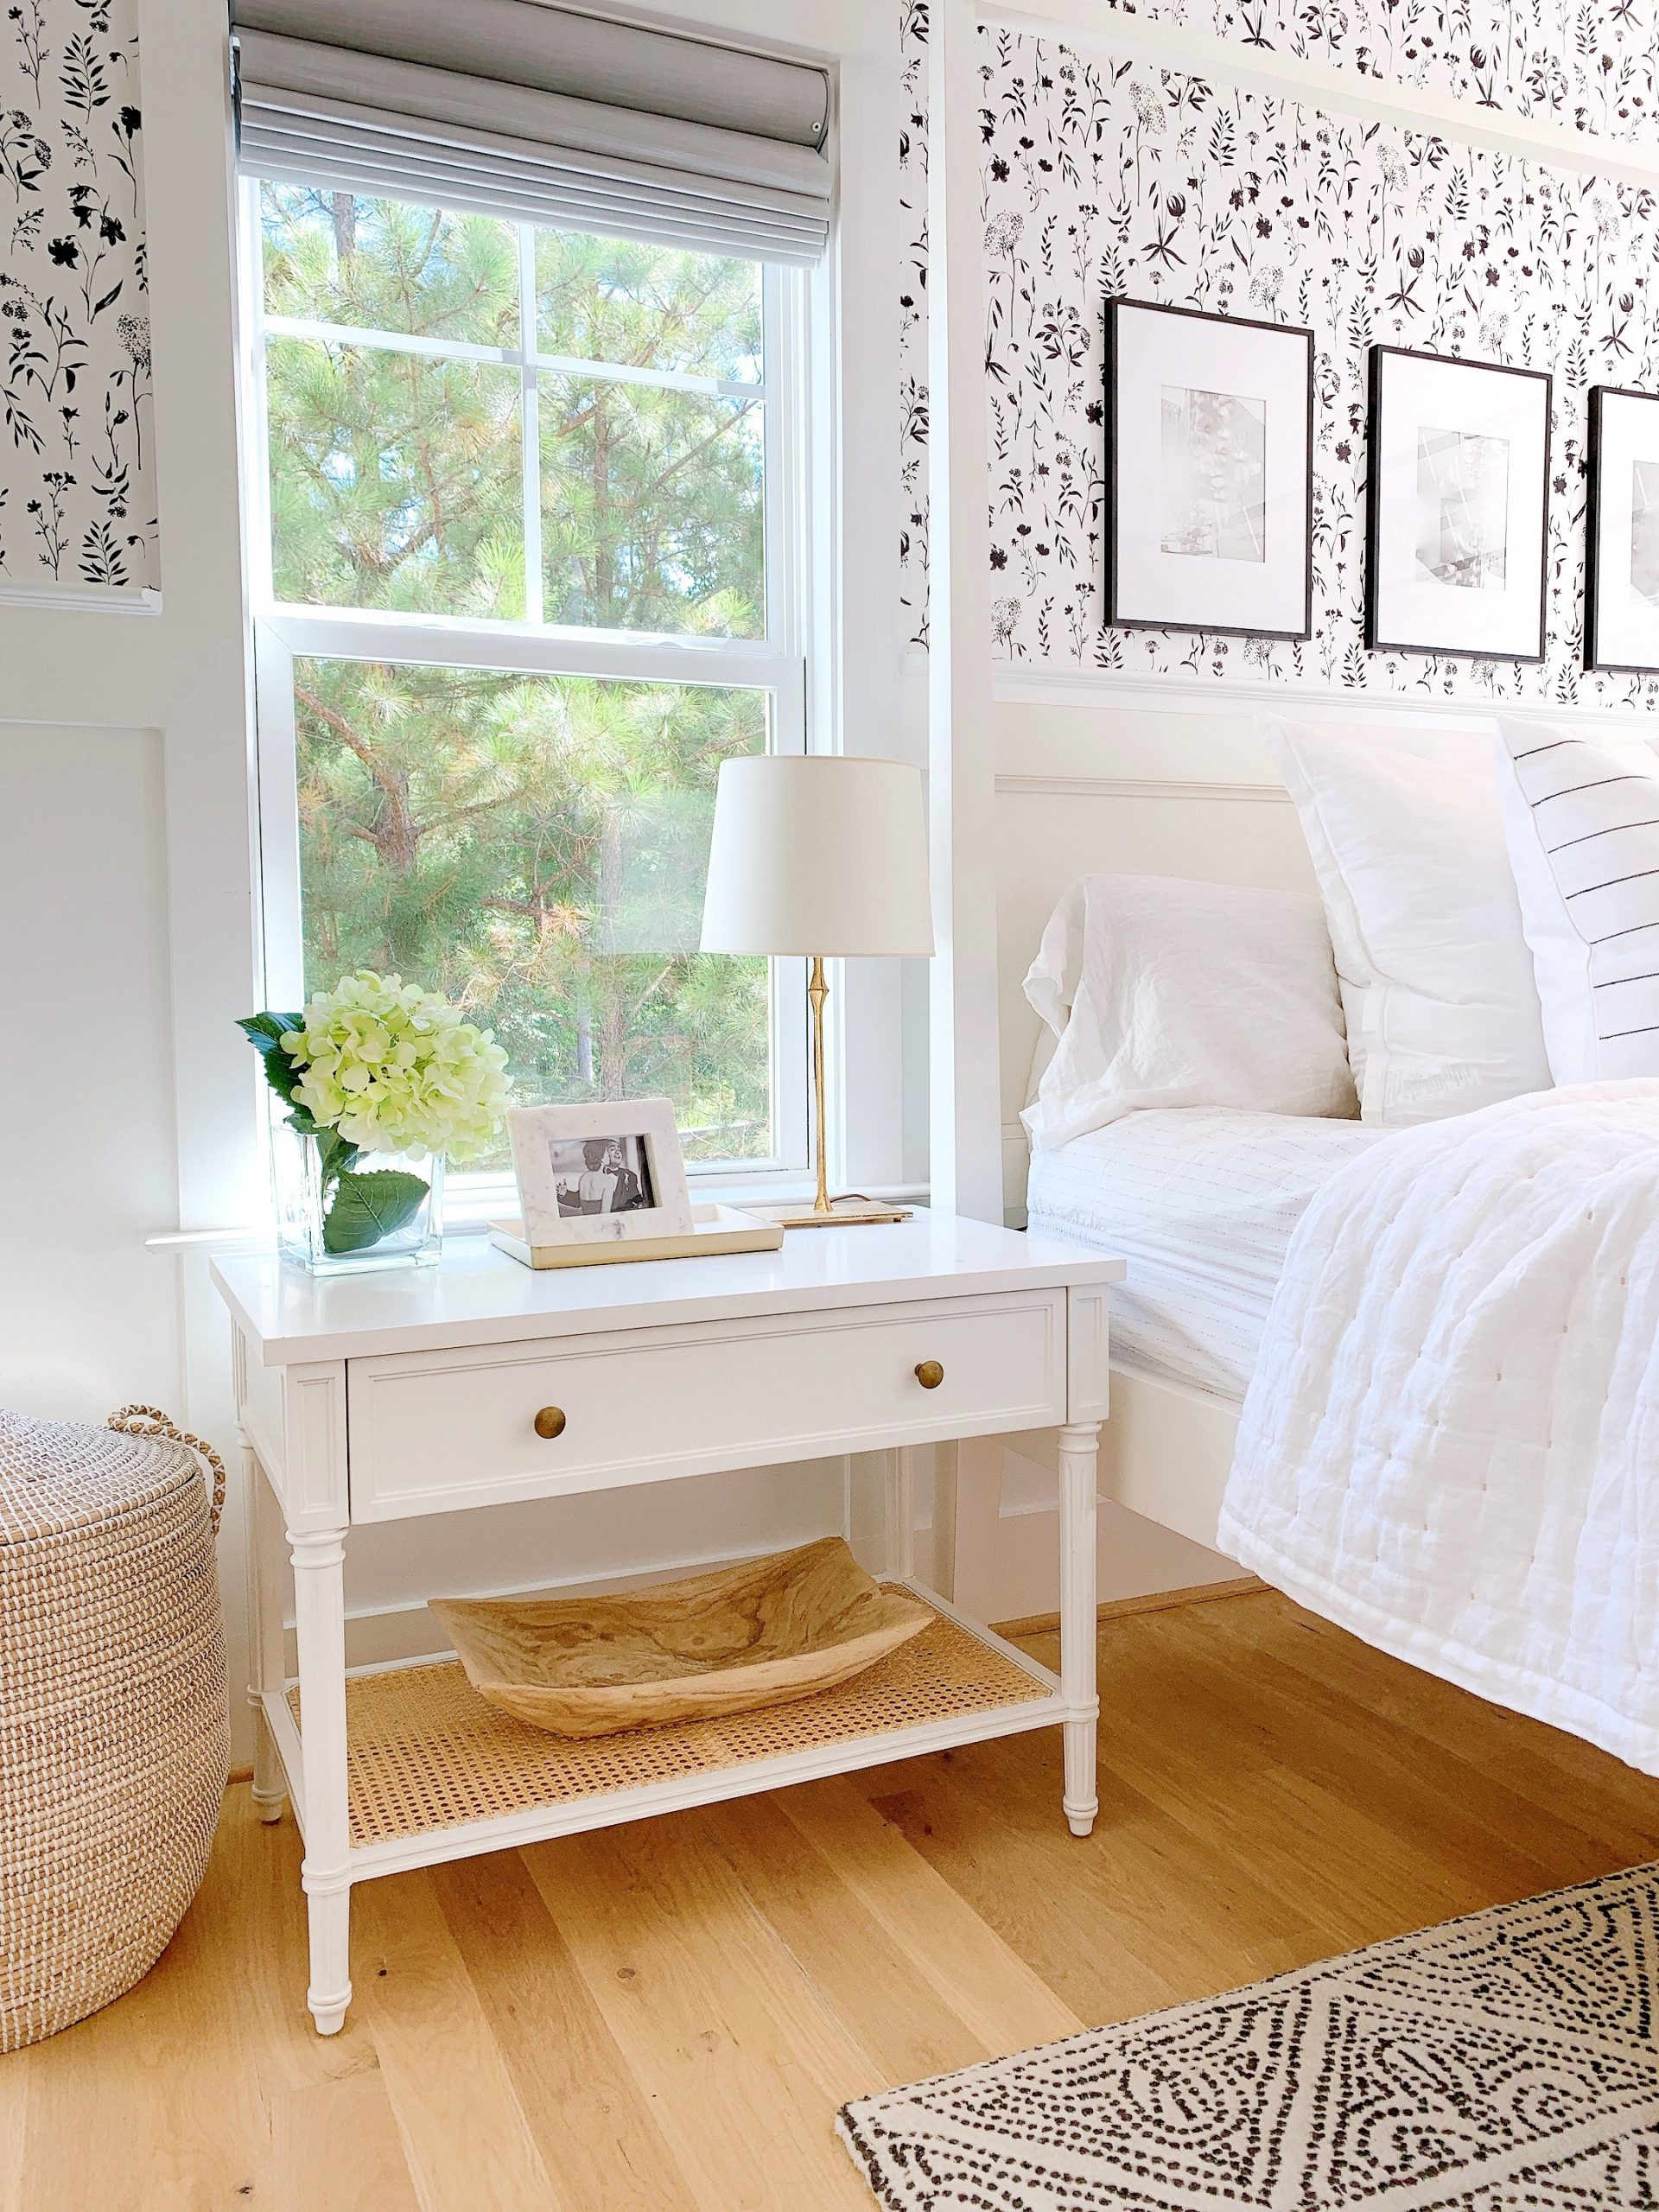 Serena and lily harbour cane nightstands in a bedroom